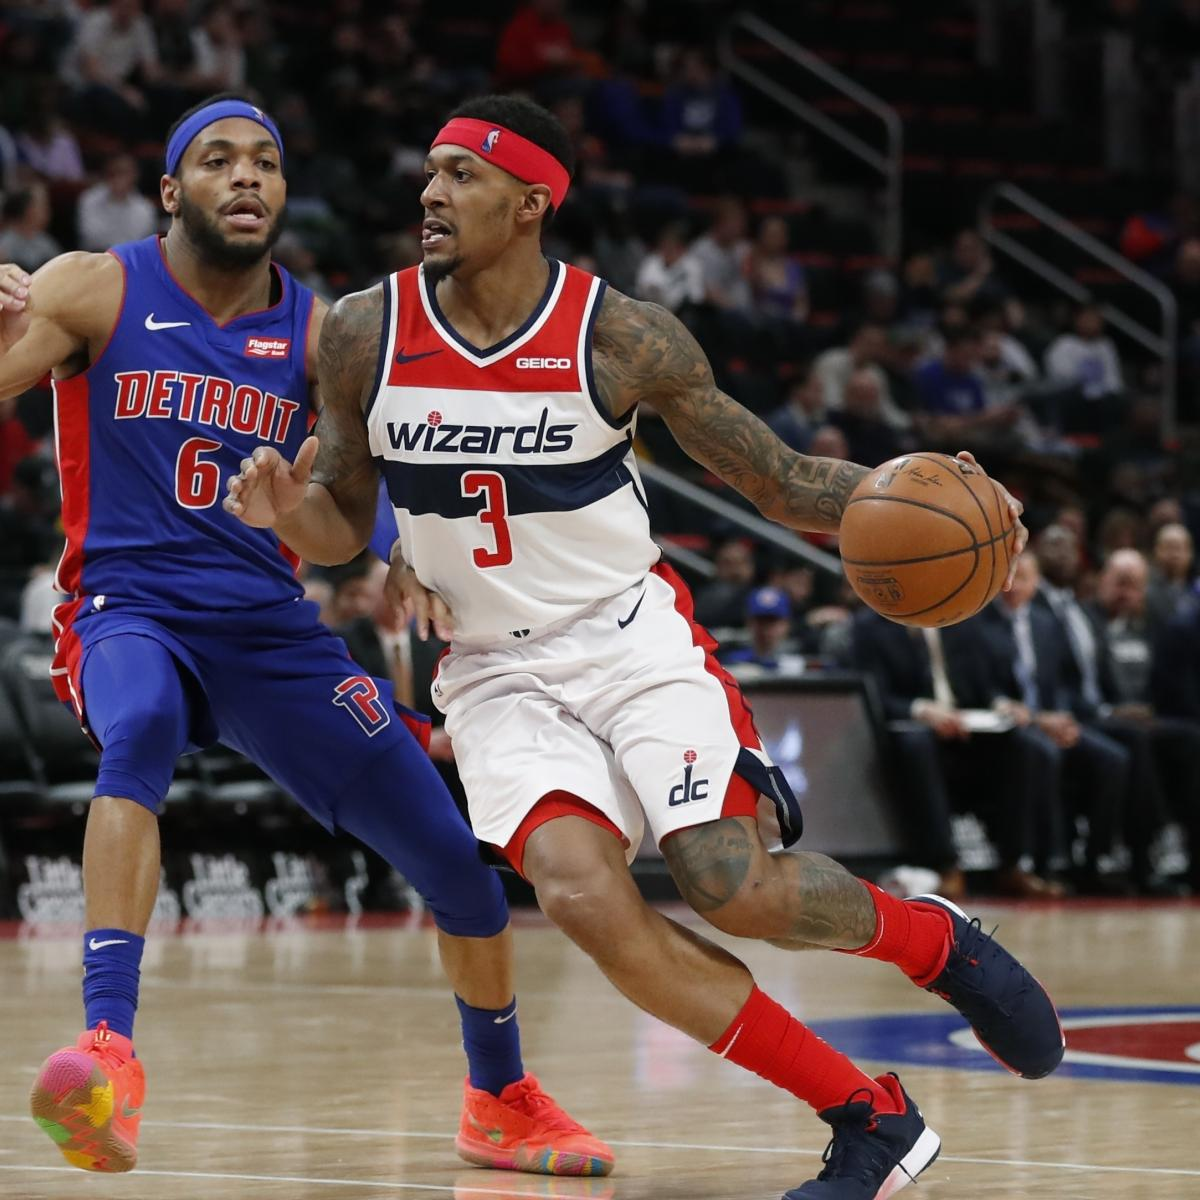 Nba Rules Bradley Beal Did Not Travel After Viral Video